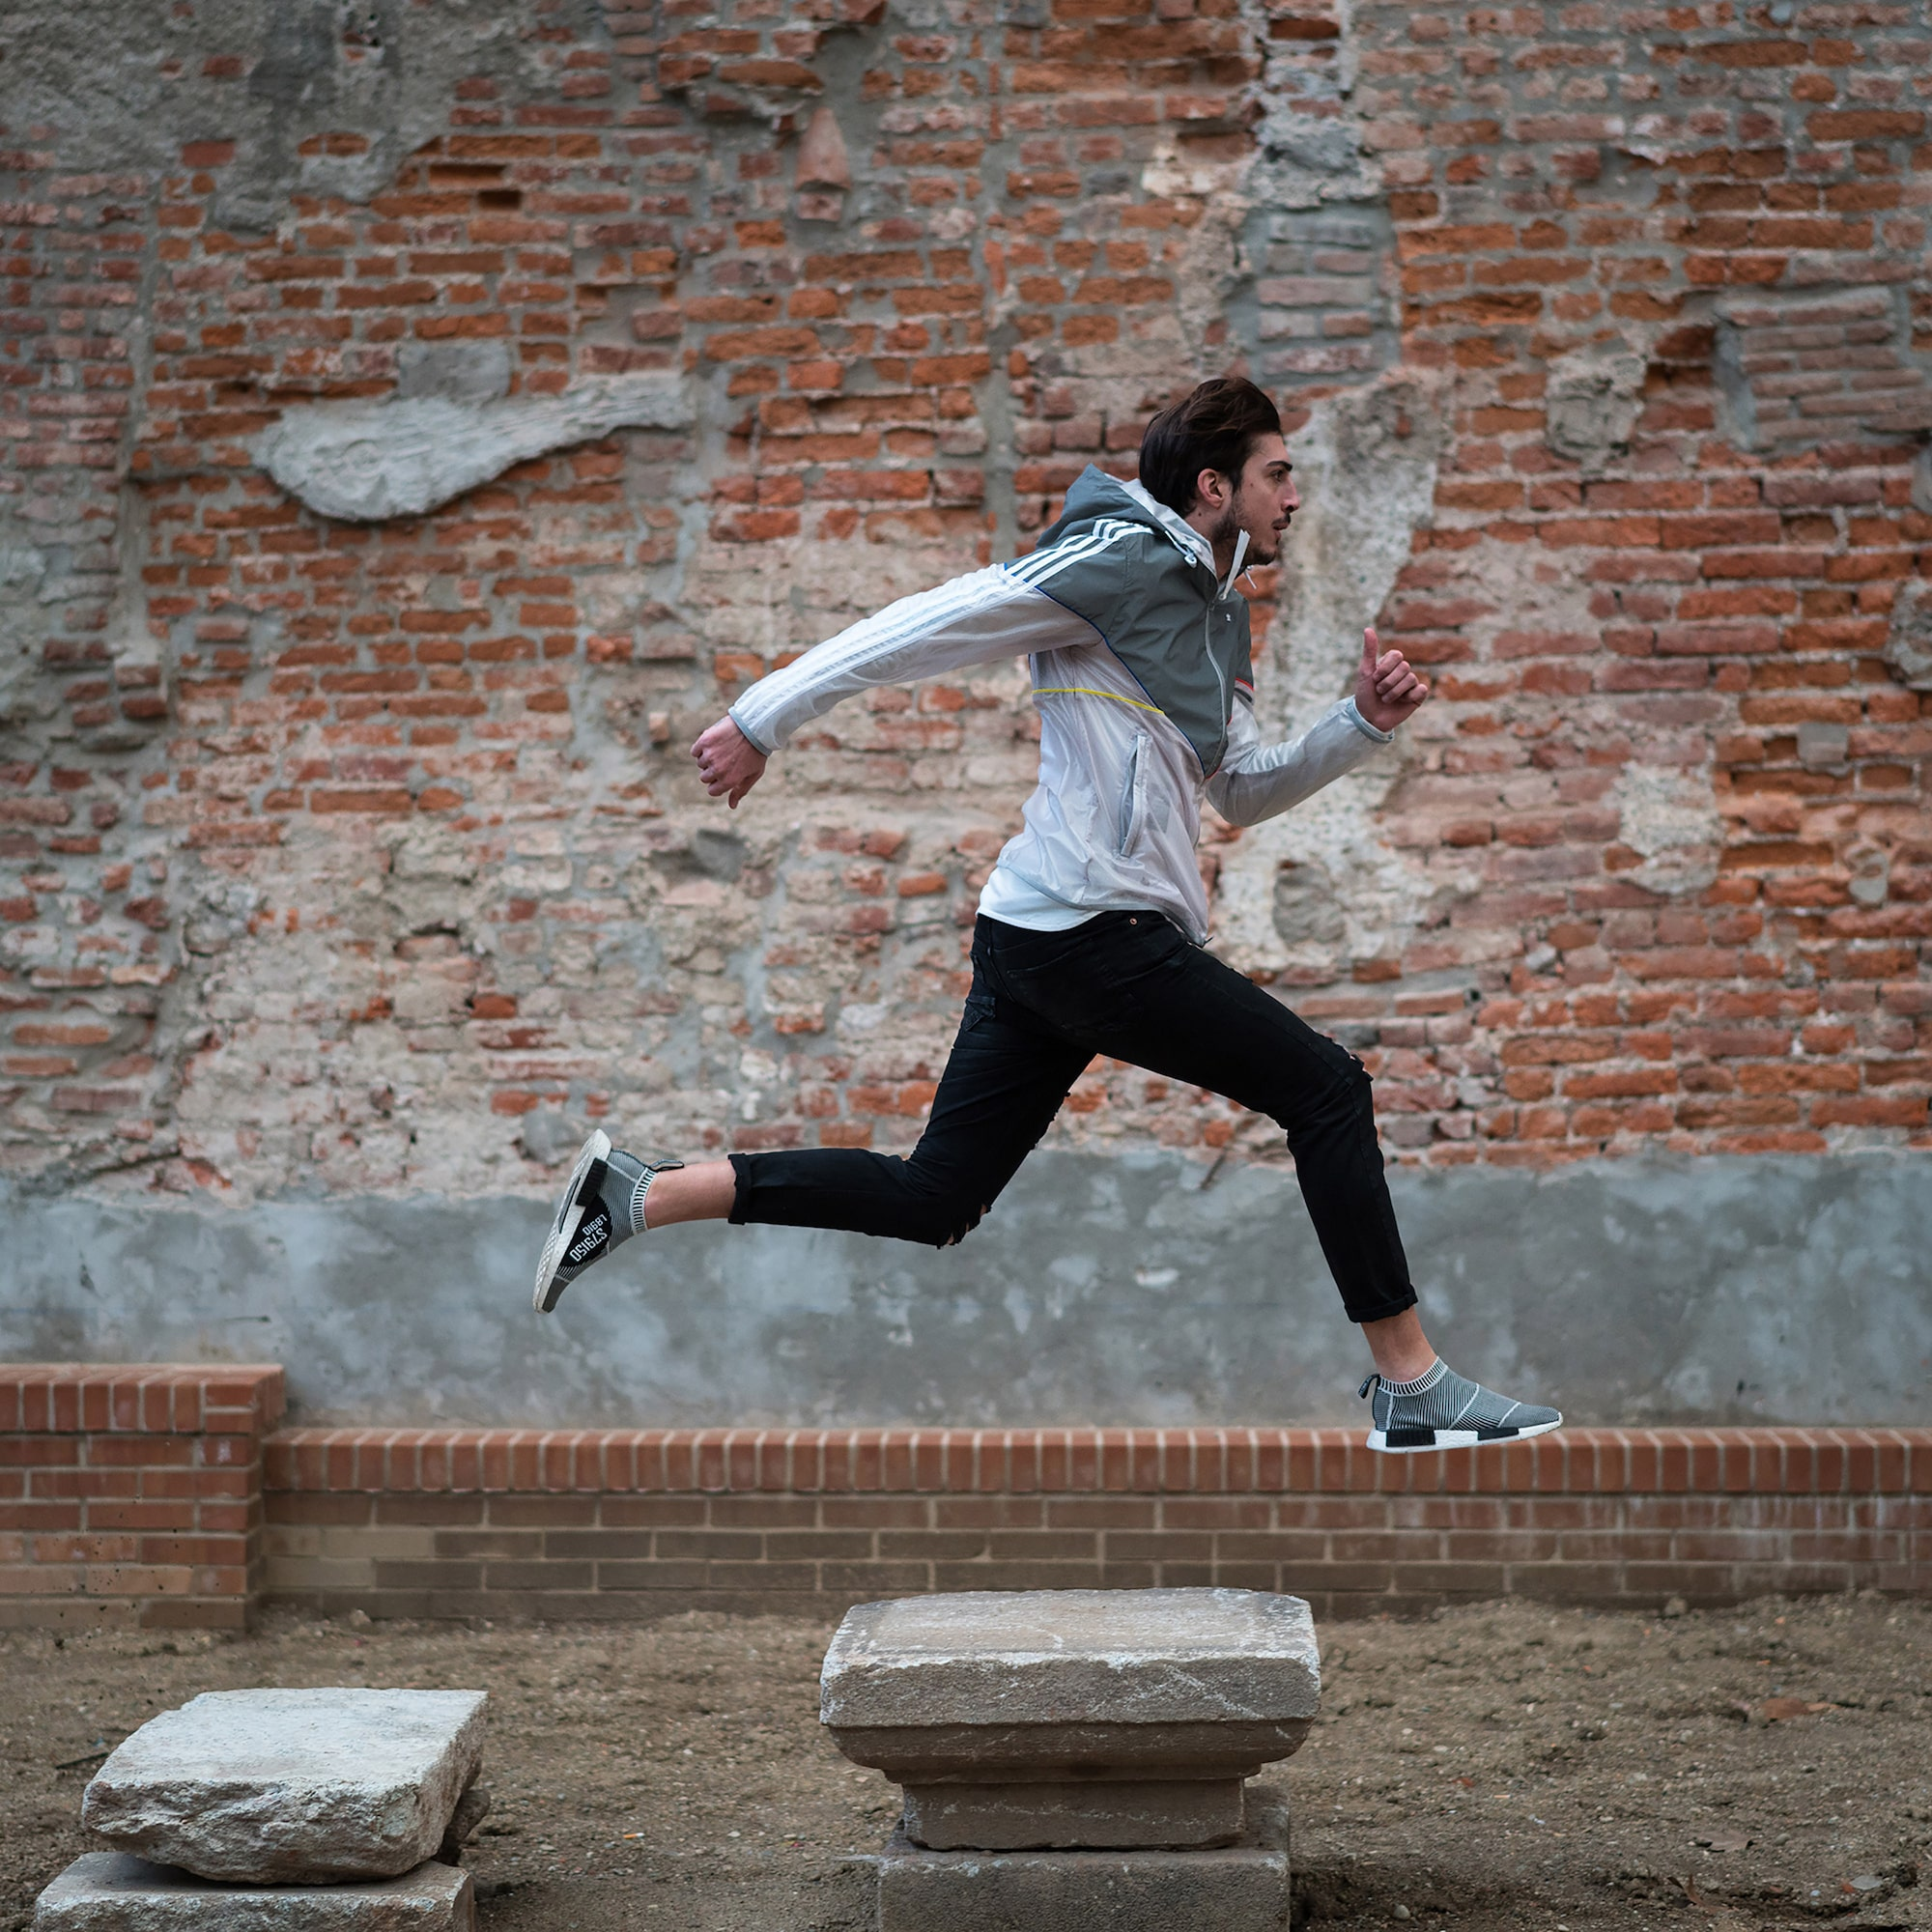 amedeo novelli sony alpha 7RII man leaping across paving stones in mid air